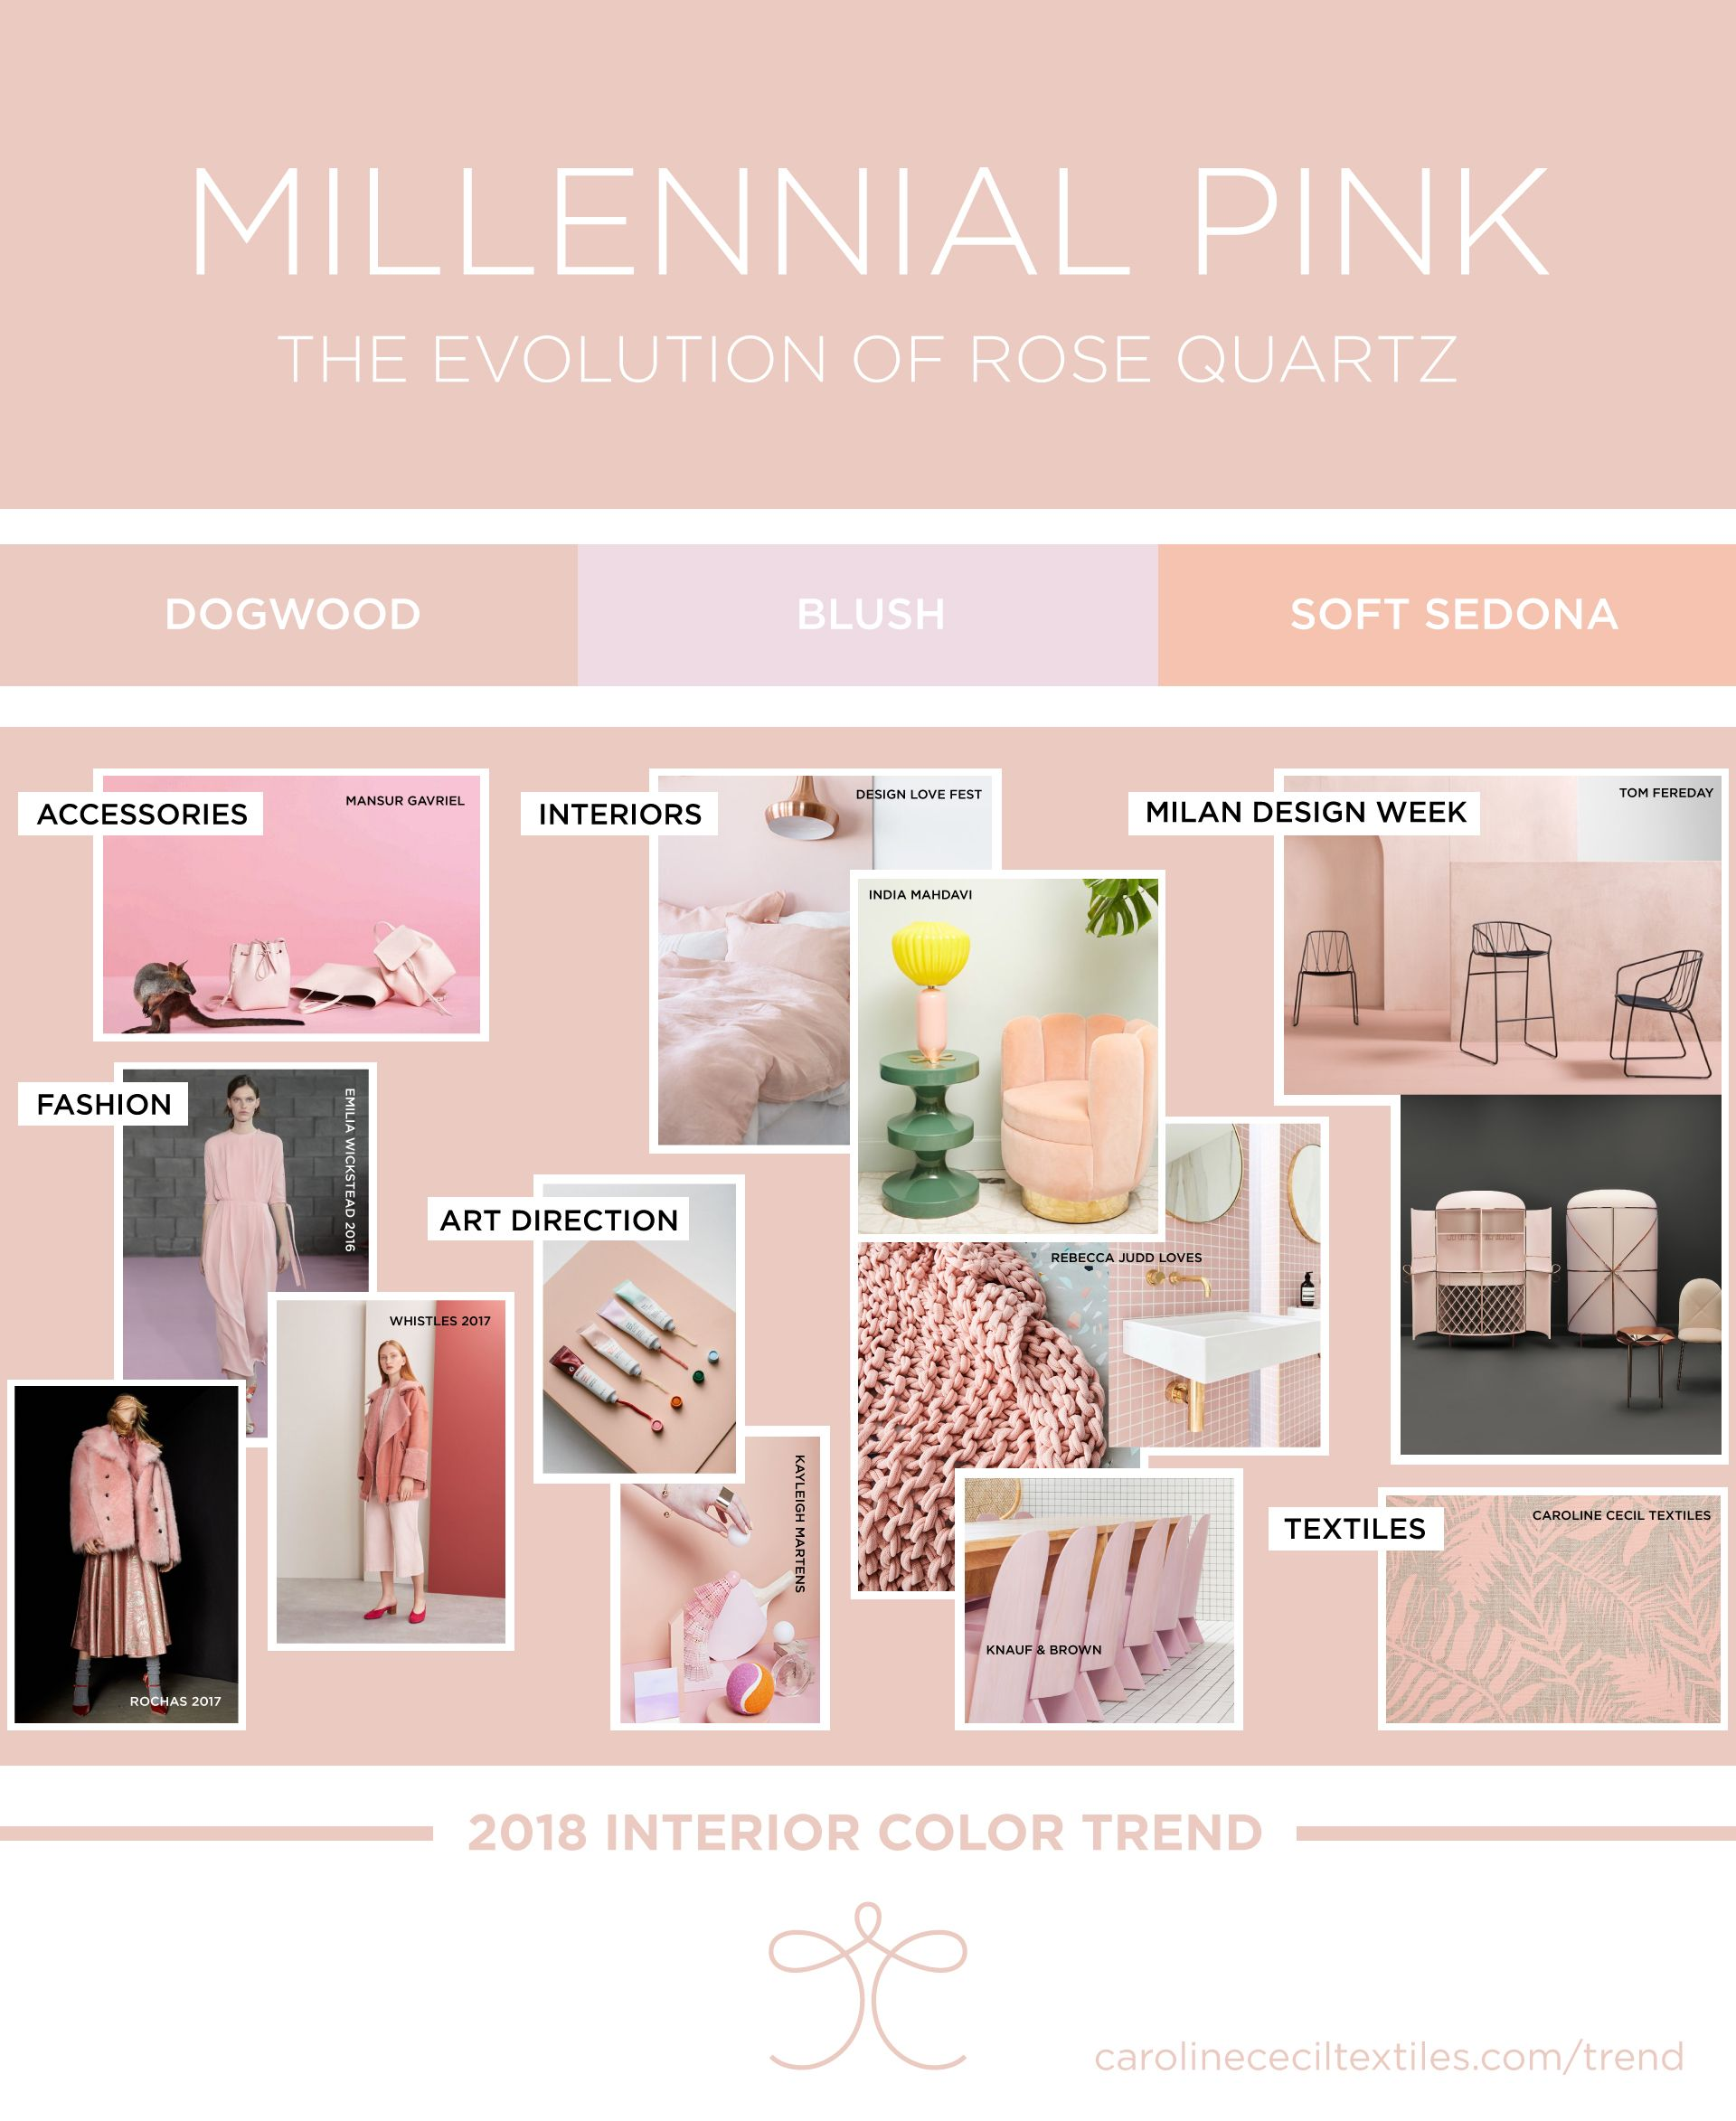 Interior color trends 2018 millenial pink fashion interiors home decor paint colors pink rose quartz pantone